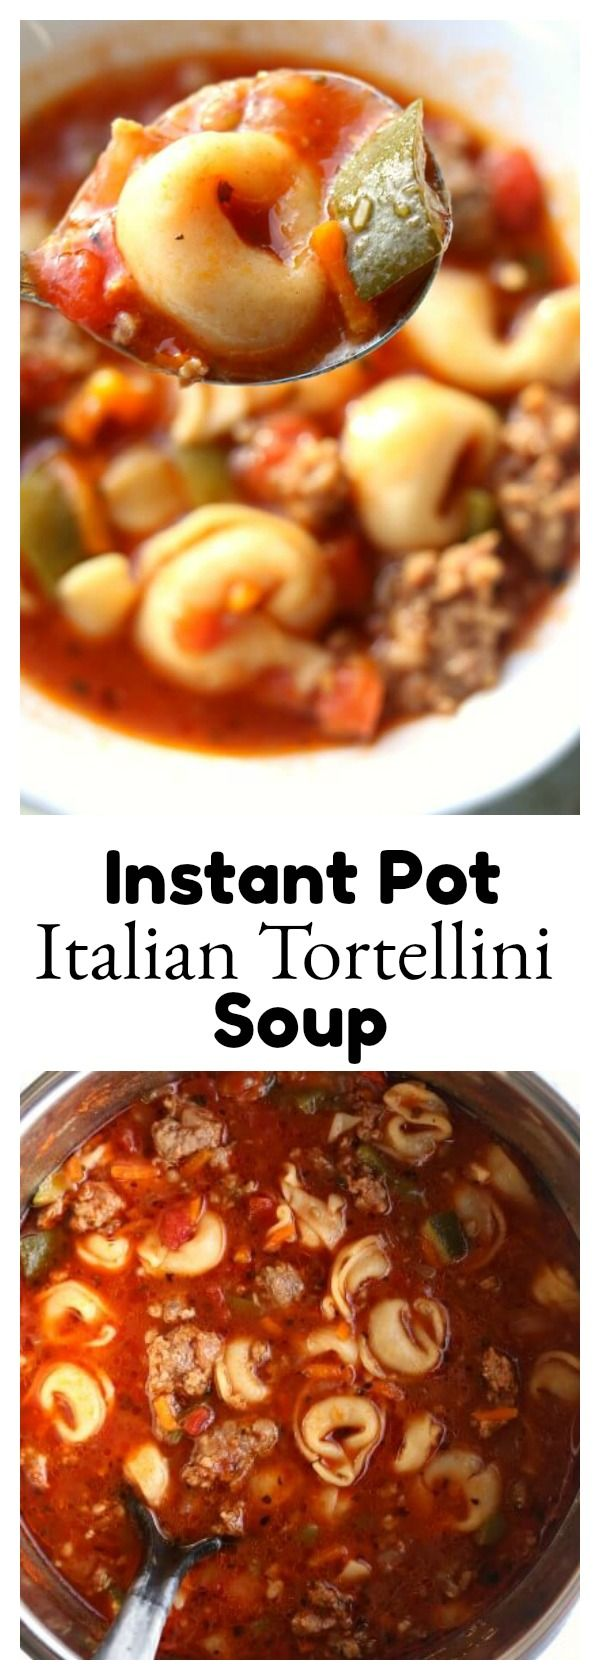 Instant Pot Italian Tortellini Soup–Italian sausage is browned with onions and garlic and then beef broth, tortellini, tomatoes, green peppers and zucchini are simmered together to produce a soup with ultimate flavor. #instantpot